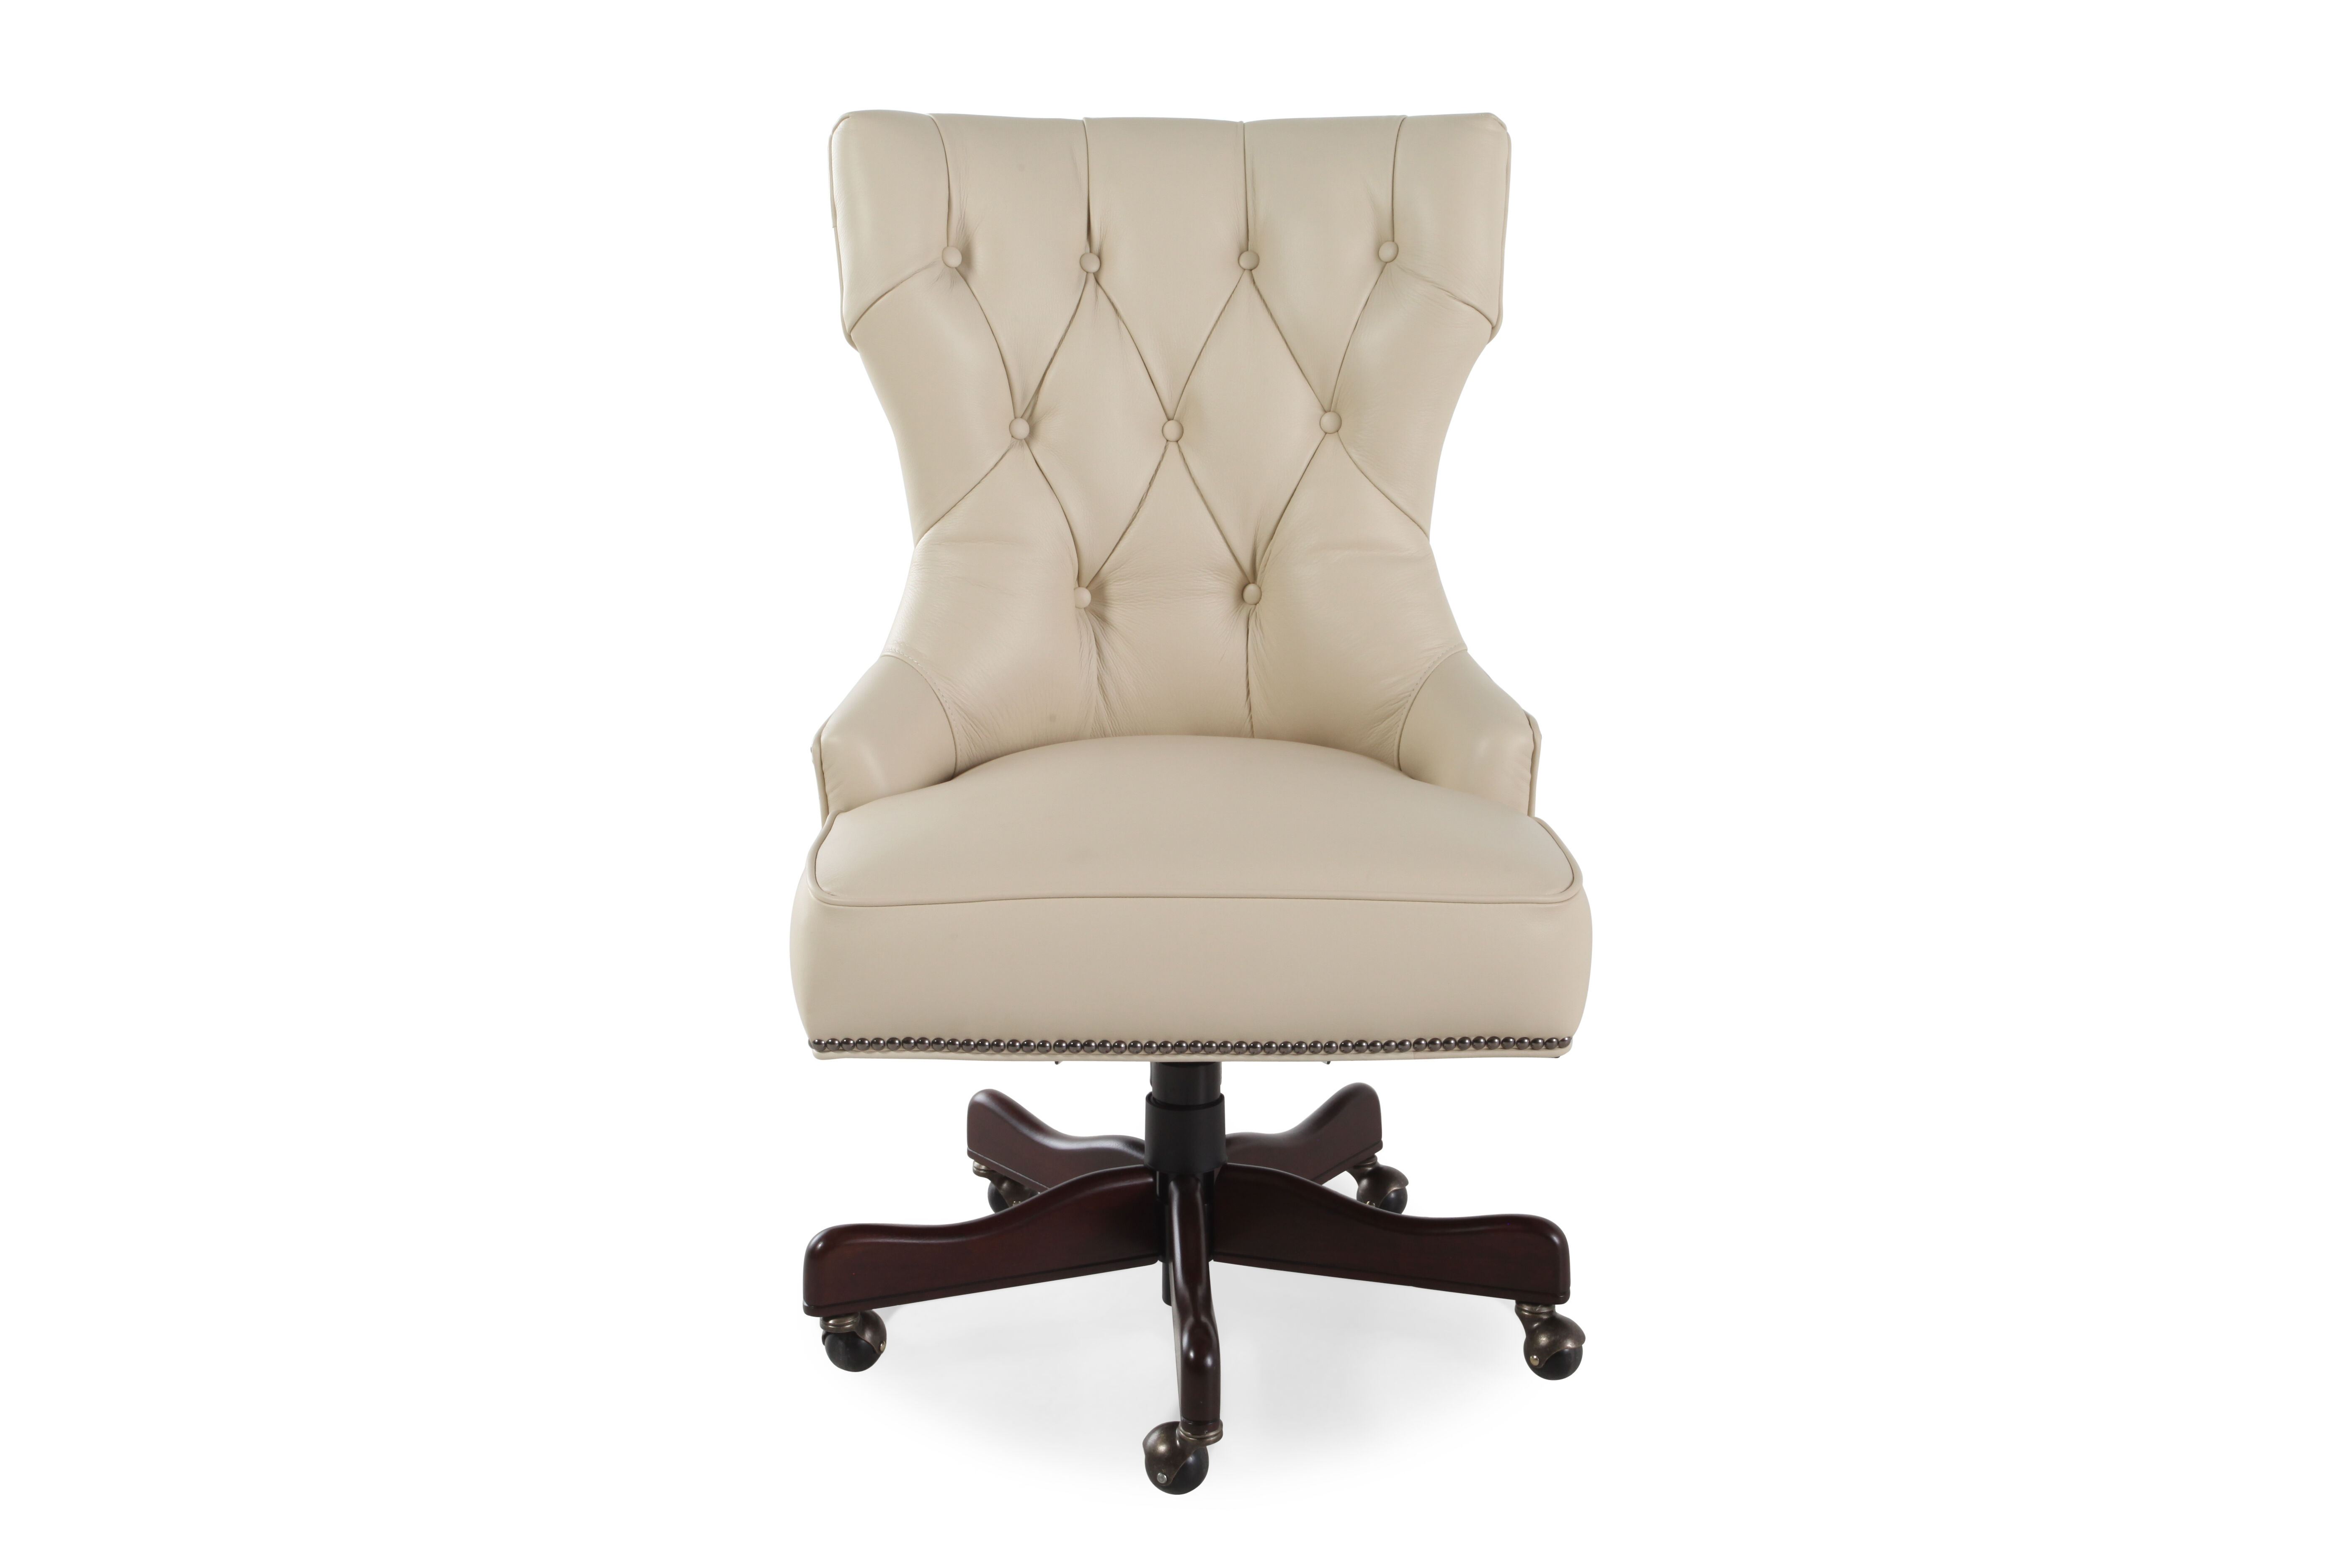 leather button tufted swivel tilt desk chair in ivory mathis rh mathisbrothers com